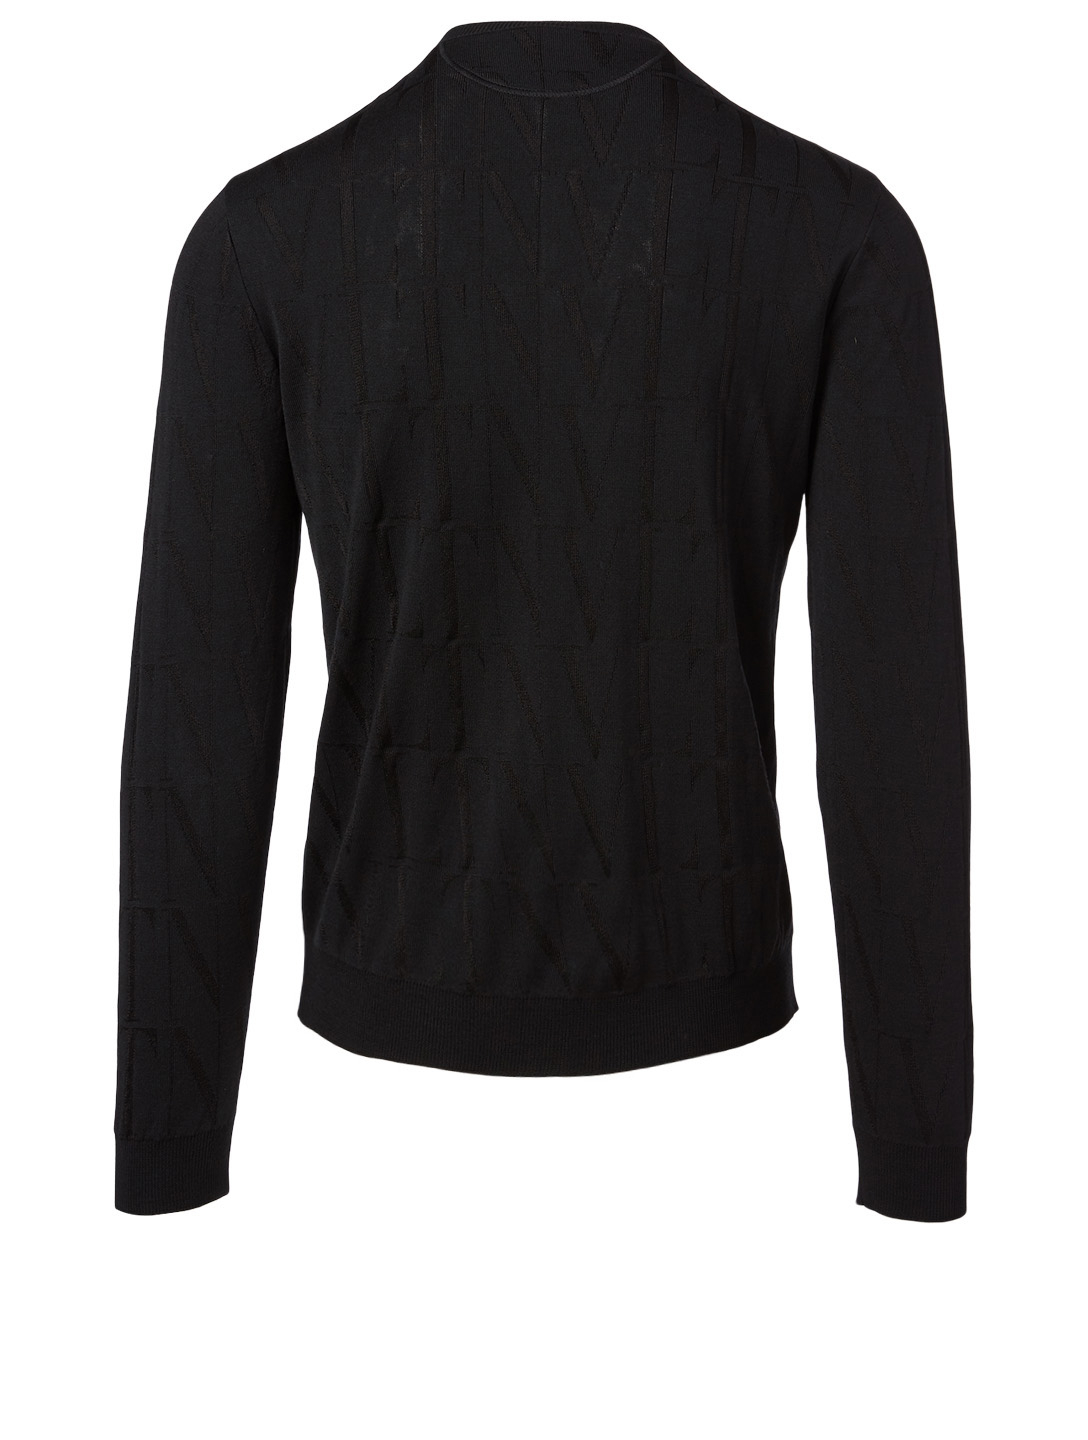 VALENTINO Wool-Blend Crewneck Sweater Men's Black